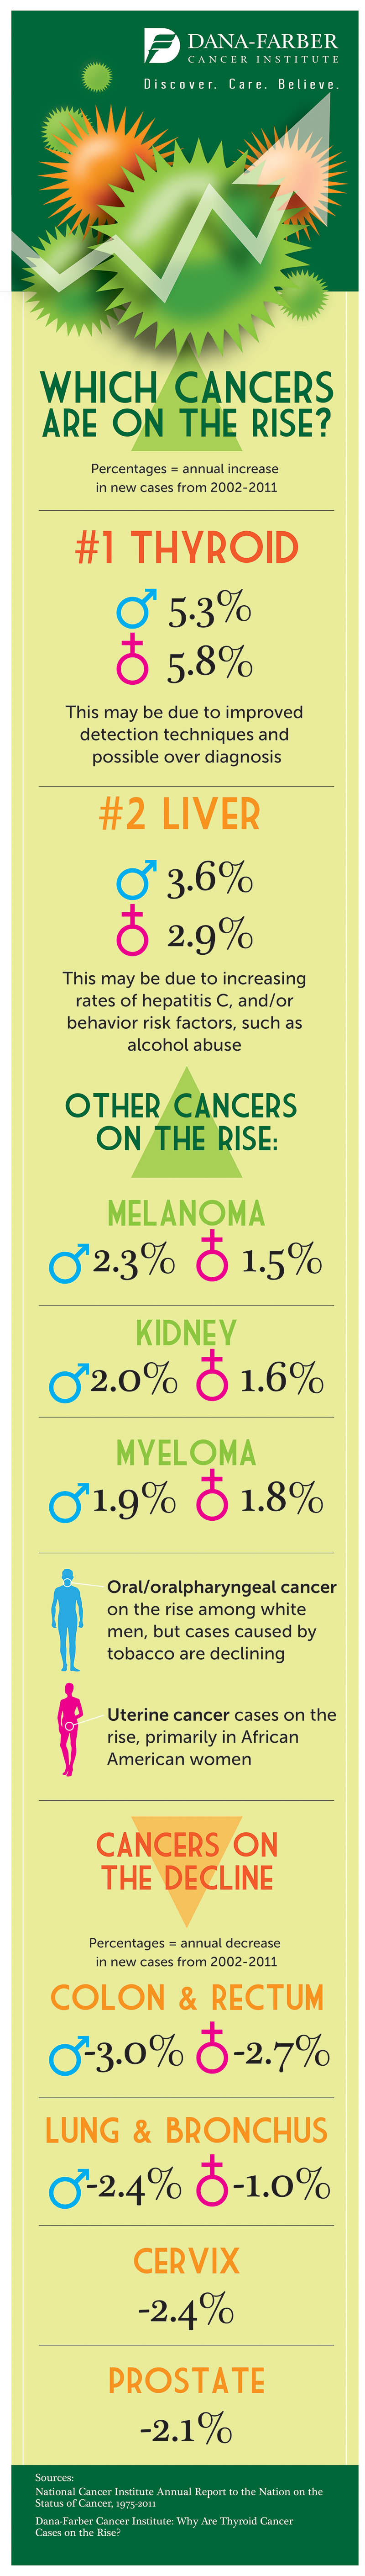 infographic, cancer trends, cancer incidence